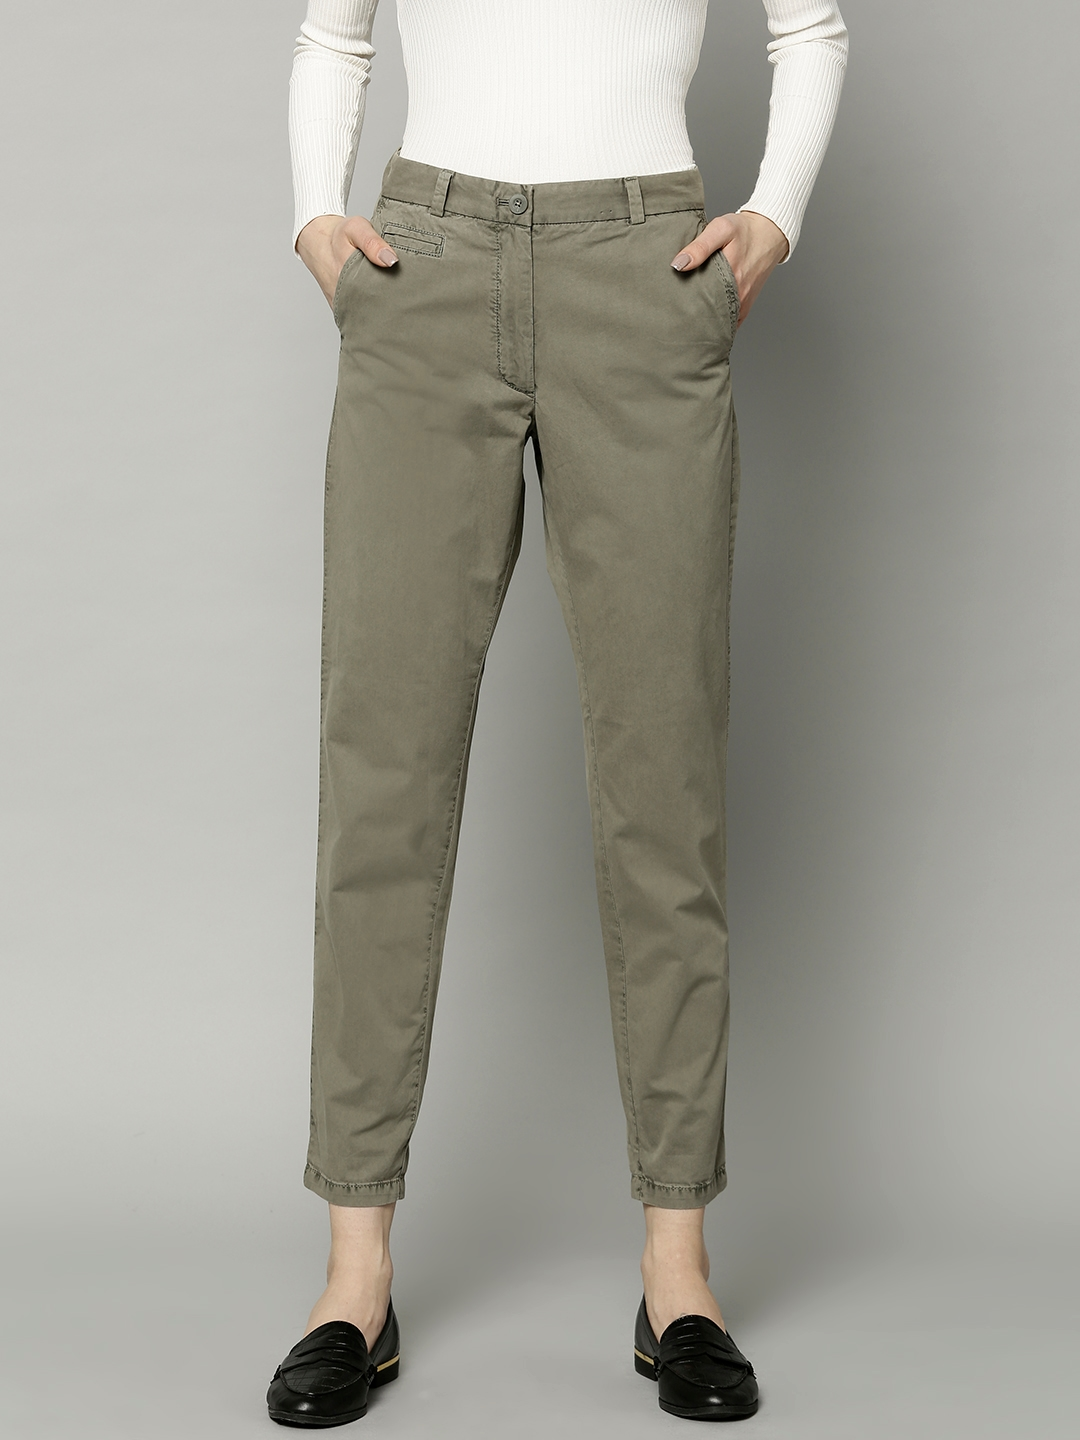 New Womens Marks /& Spencer Green Linen Crop Trousers Size 8